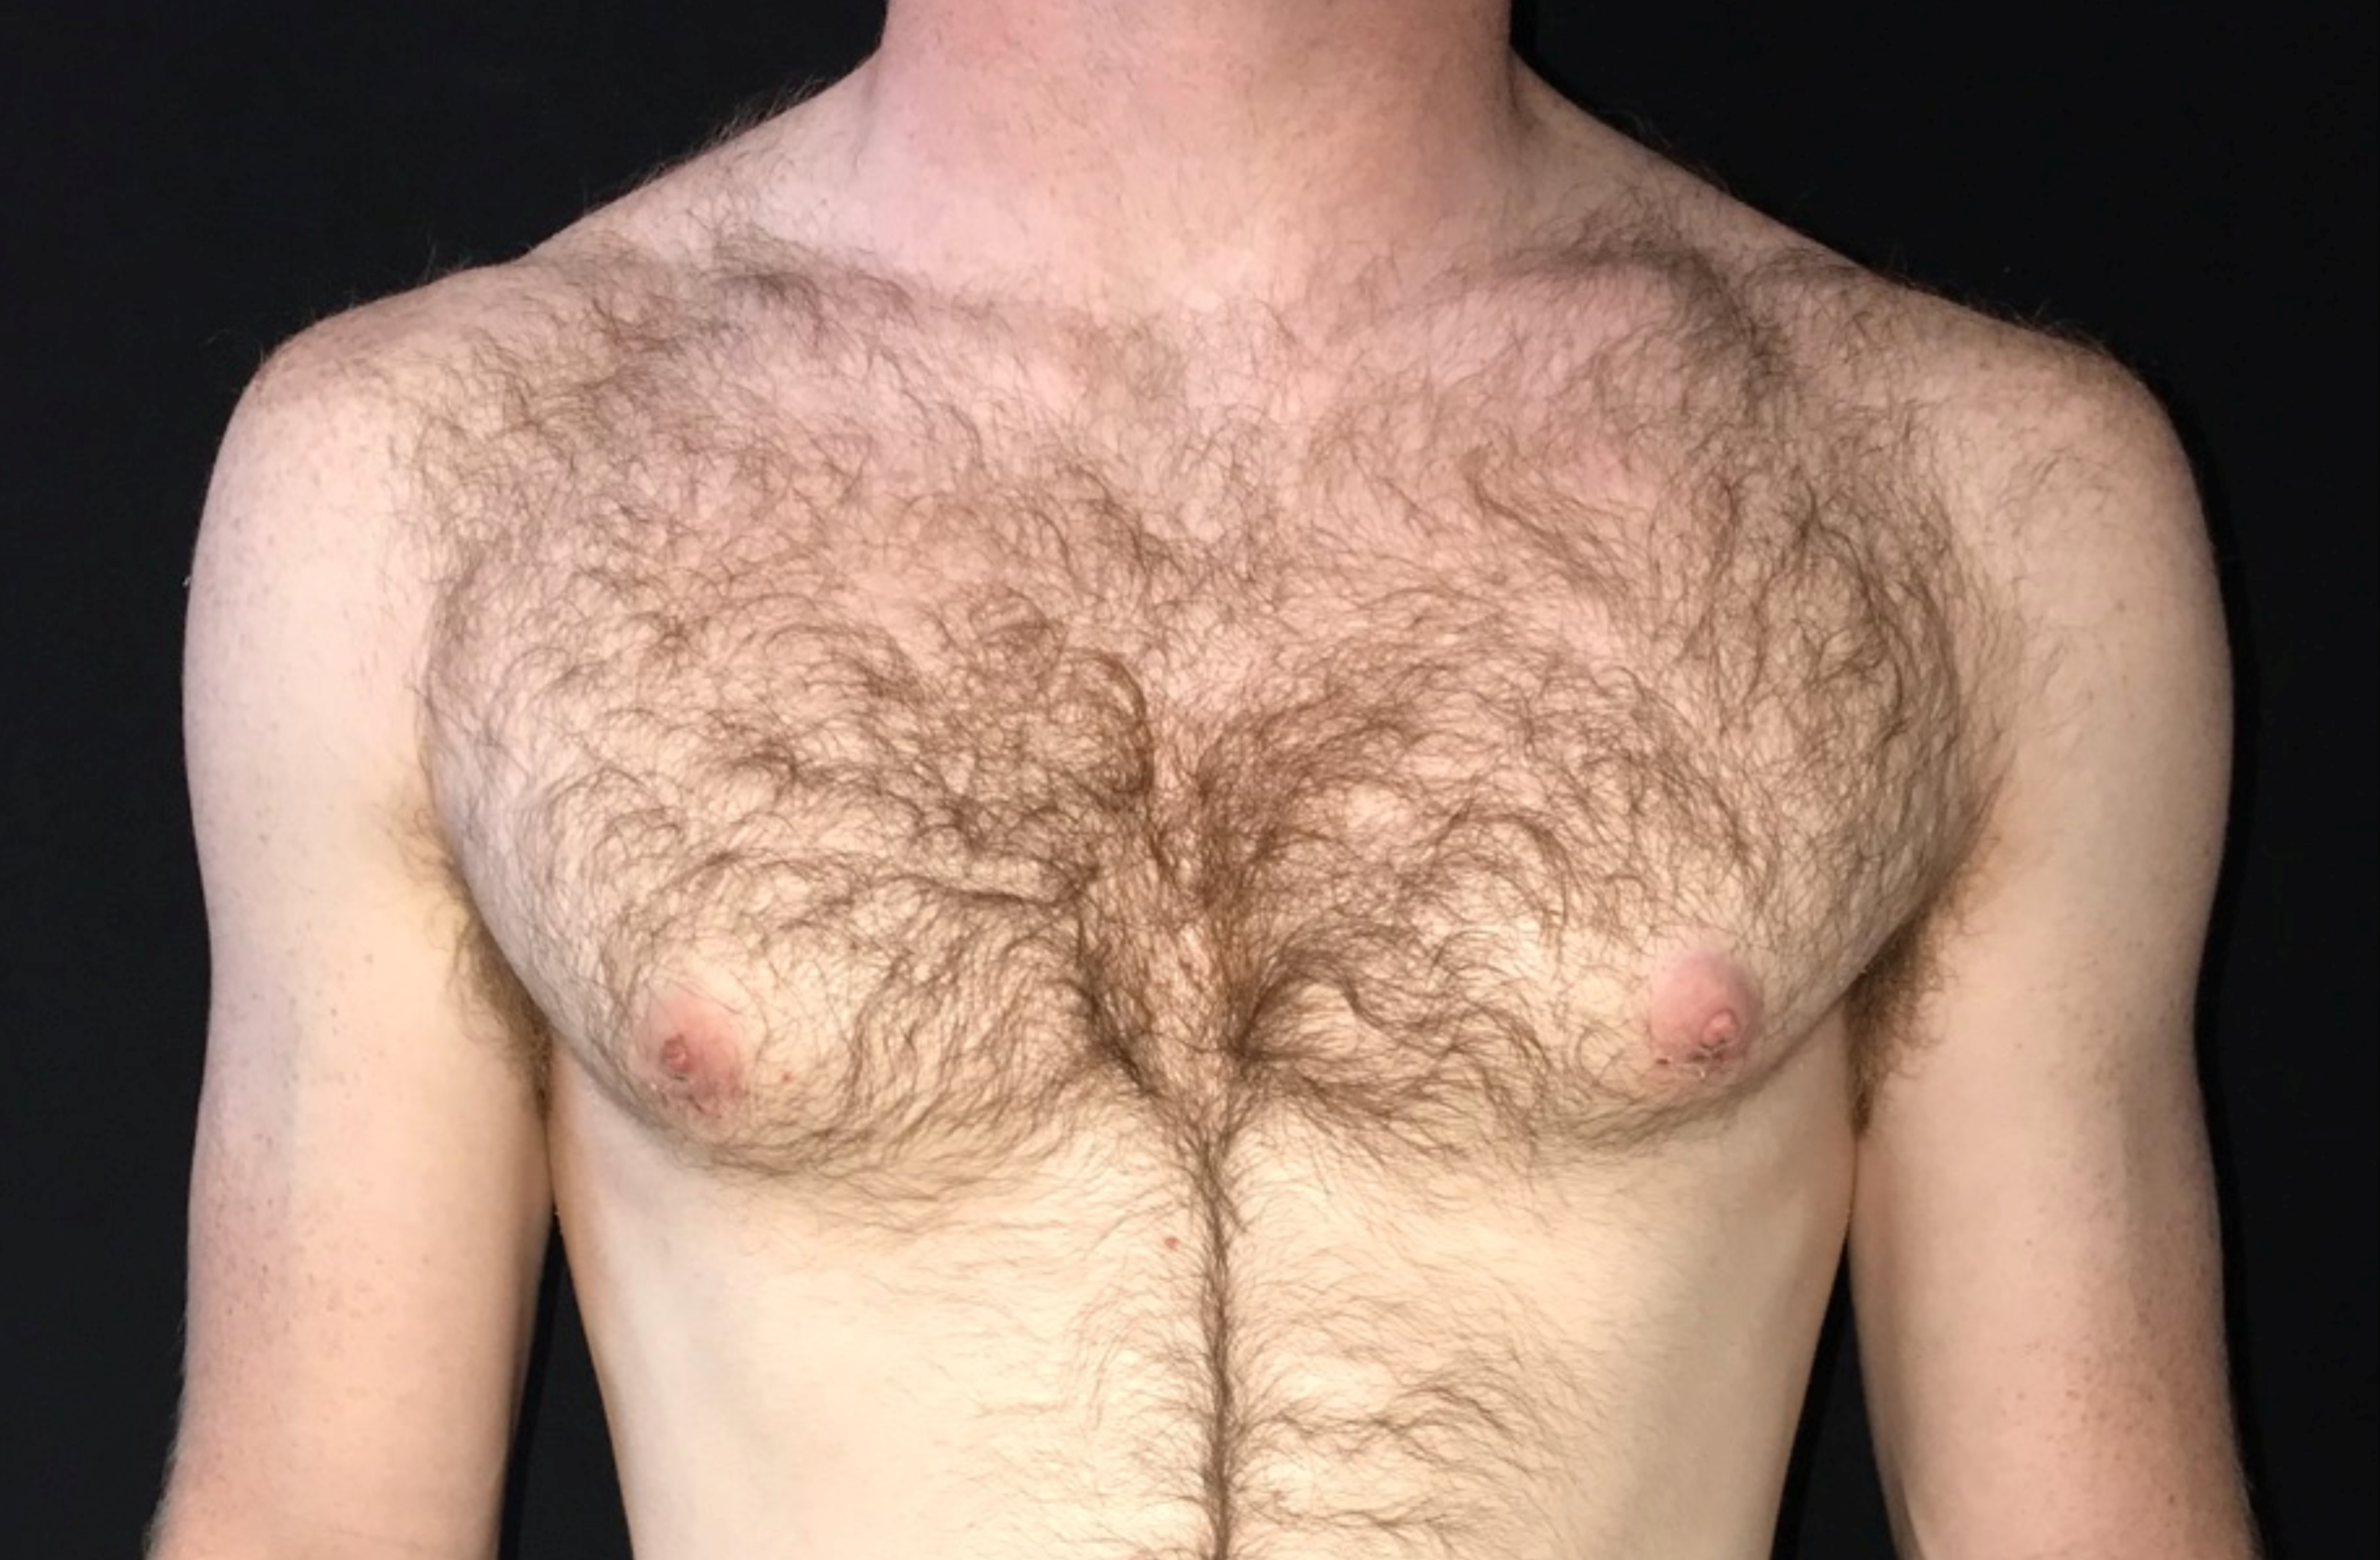 Great Gynecomastia Results! After